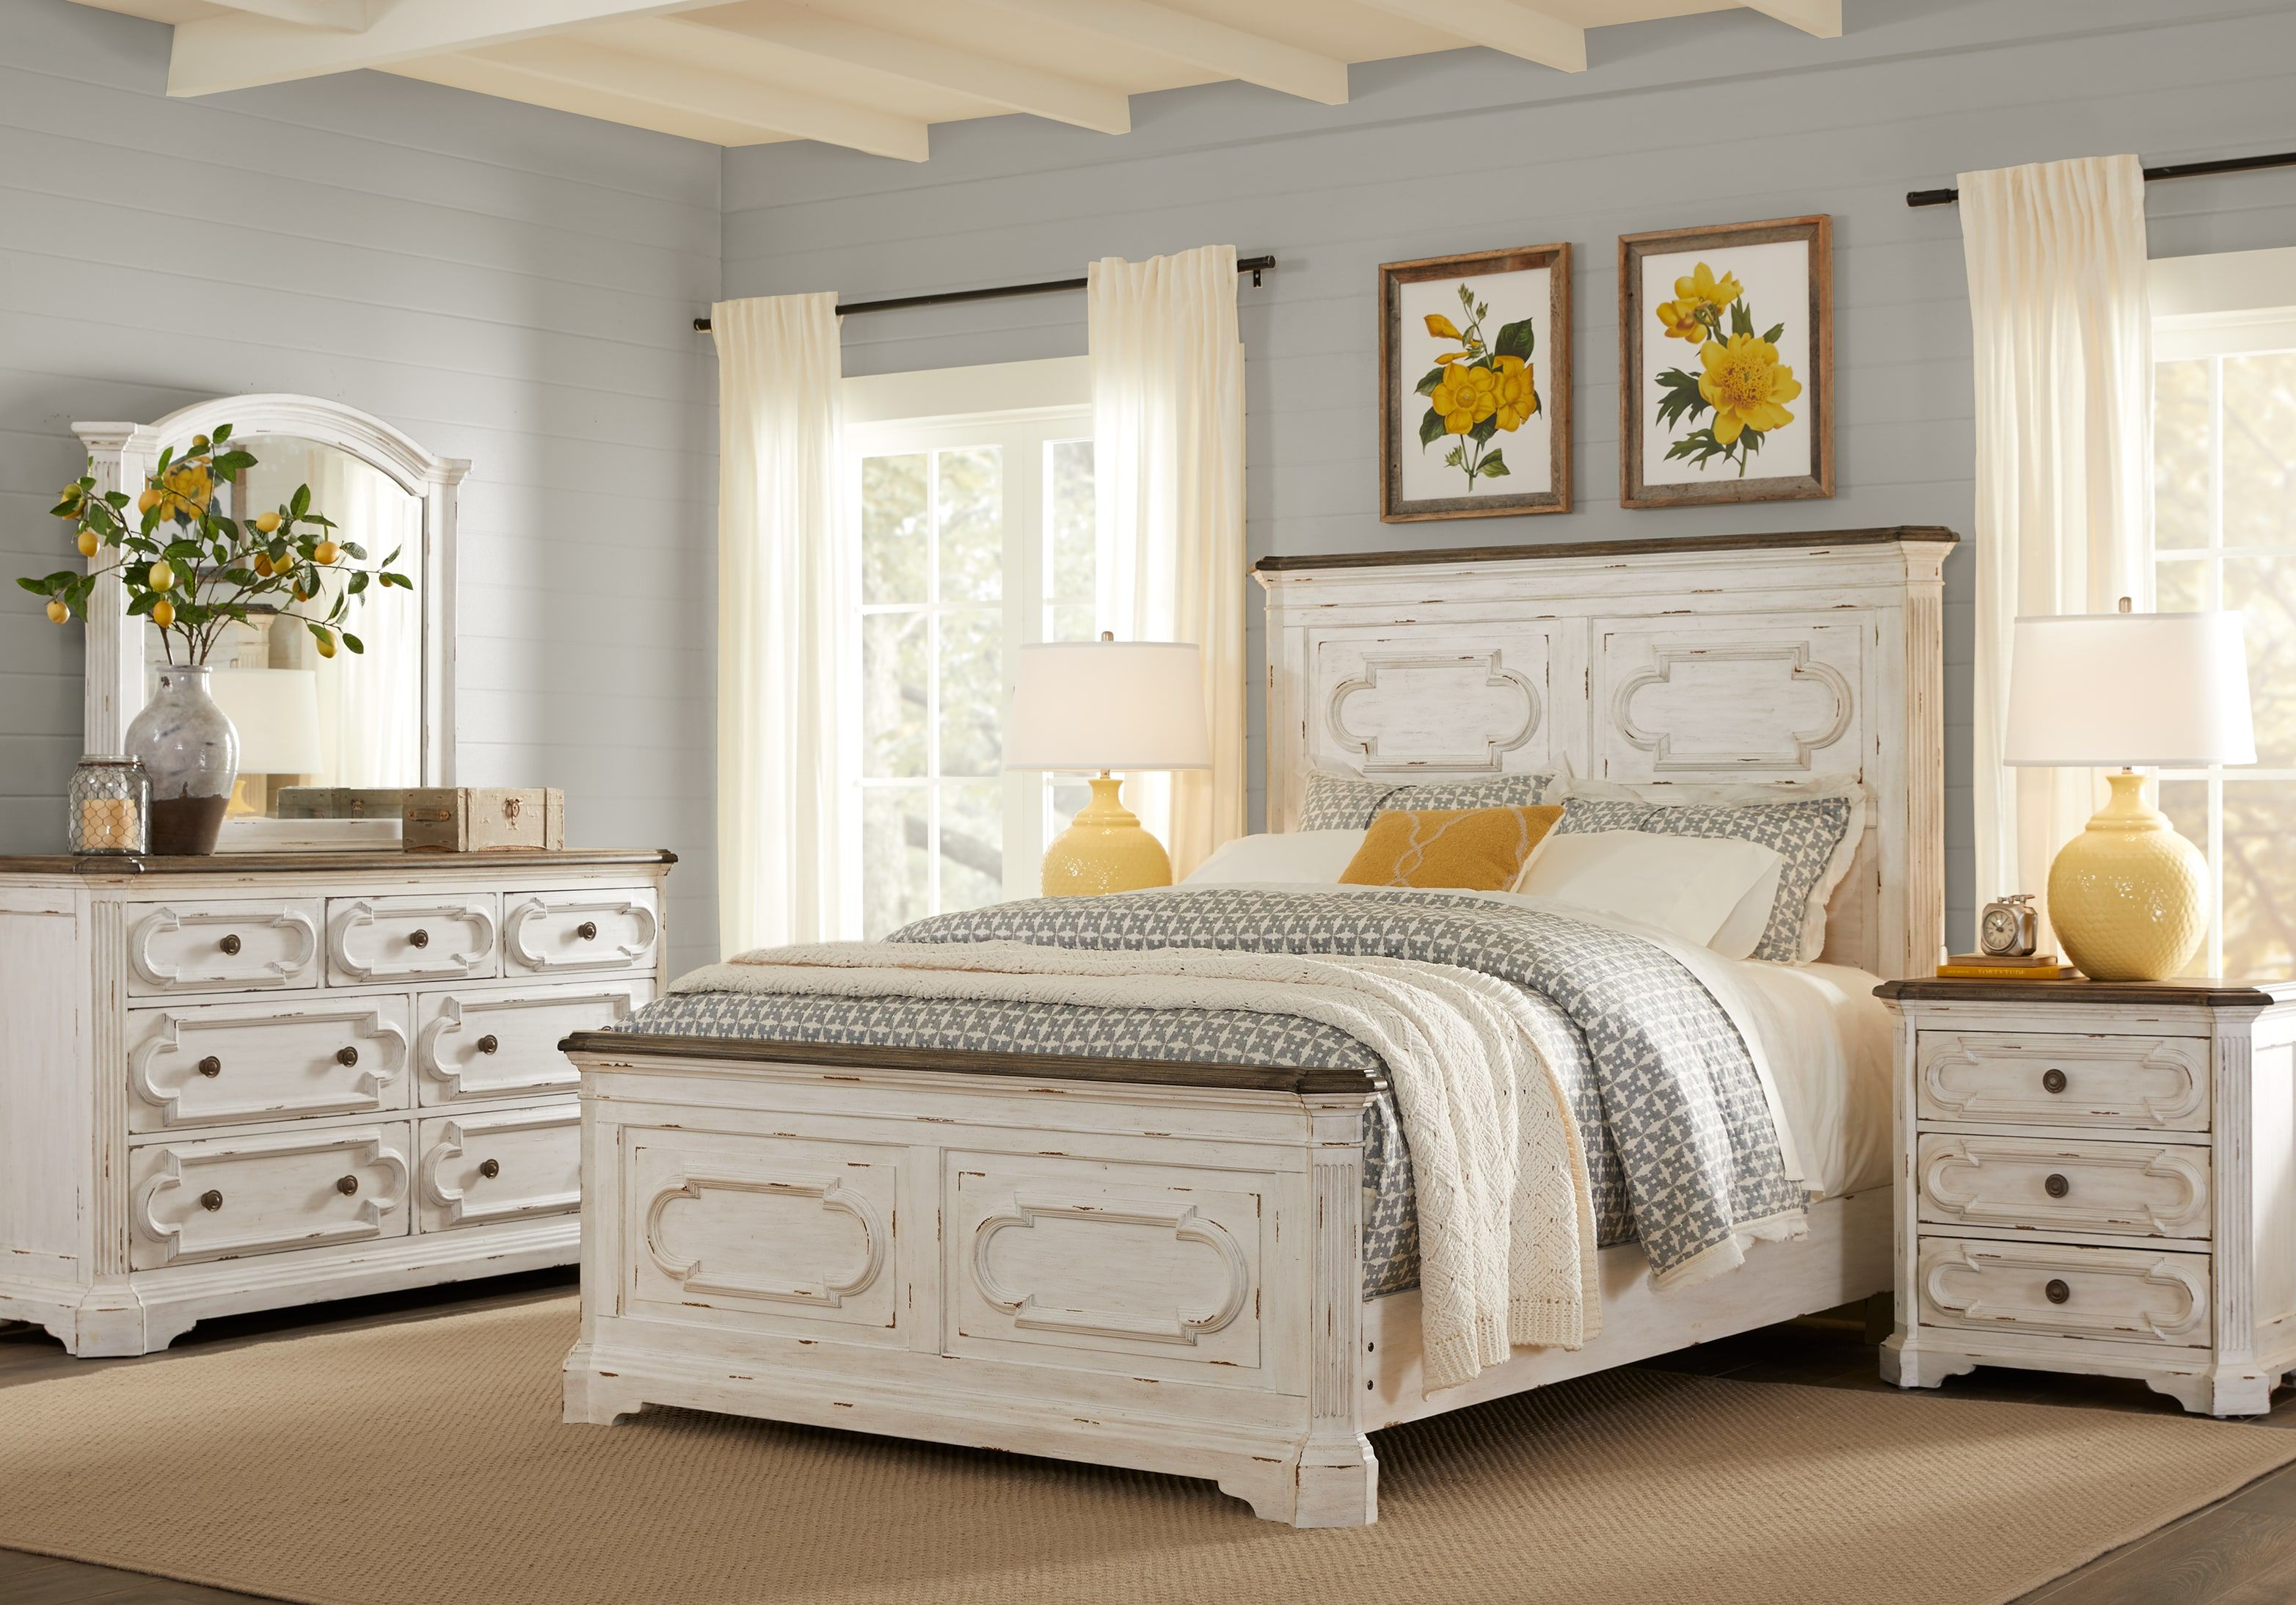 Lindenwood White 5 Pc Queen Panel Bedroom Bedroom Panel King